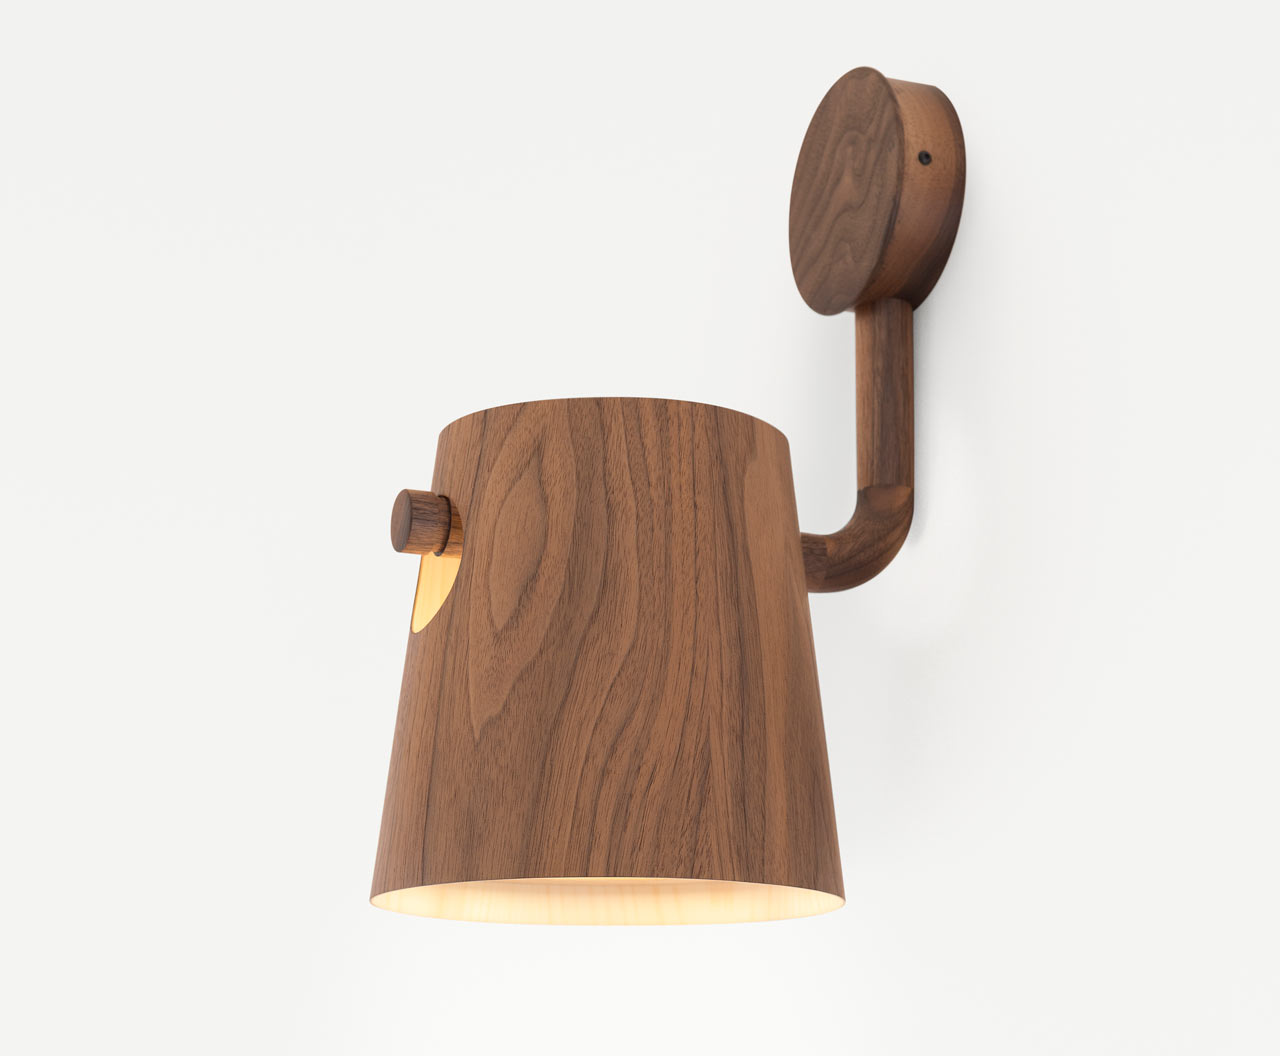 Pierre + Charlotte Launch Bucket Lighting Series Made of Tasmanian Woods